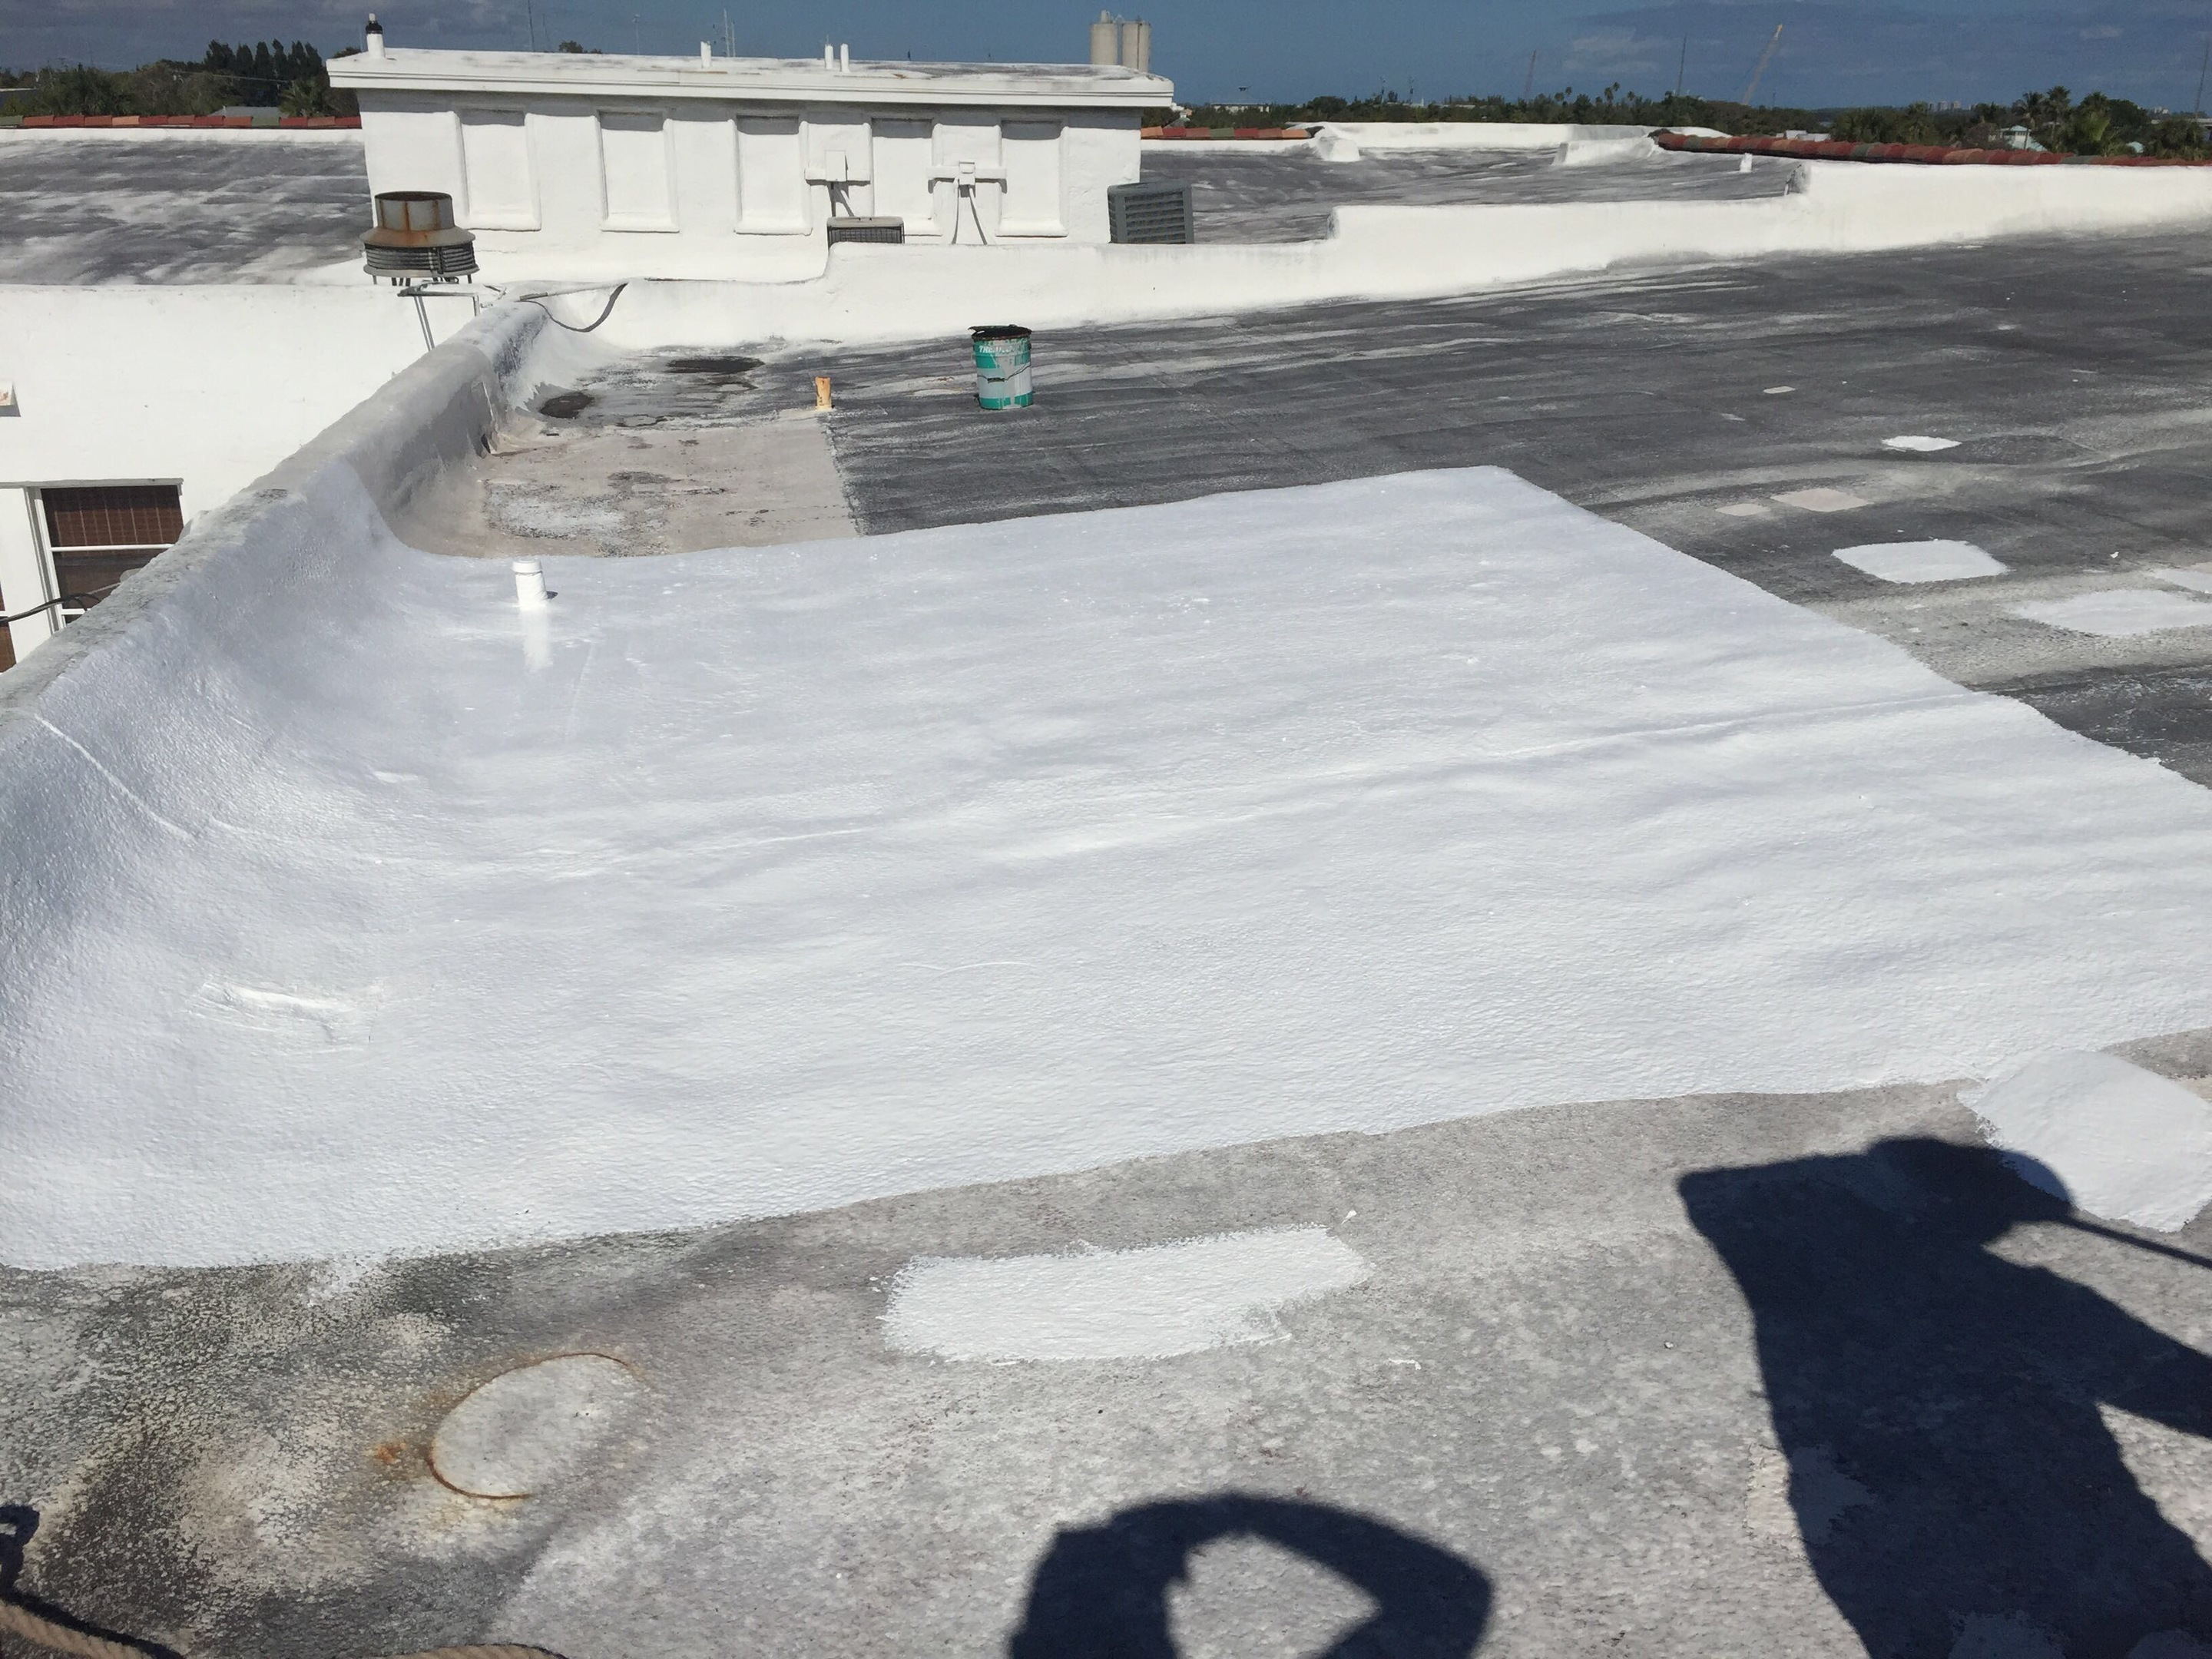 Flat Roof repairs save the day in Fort Pierce